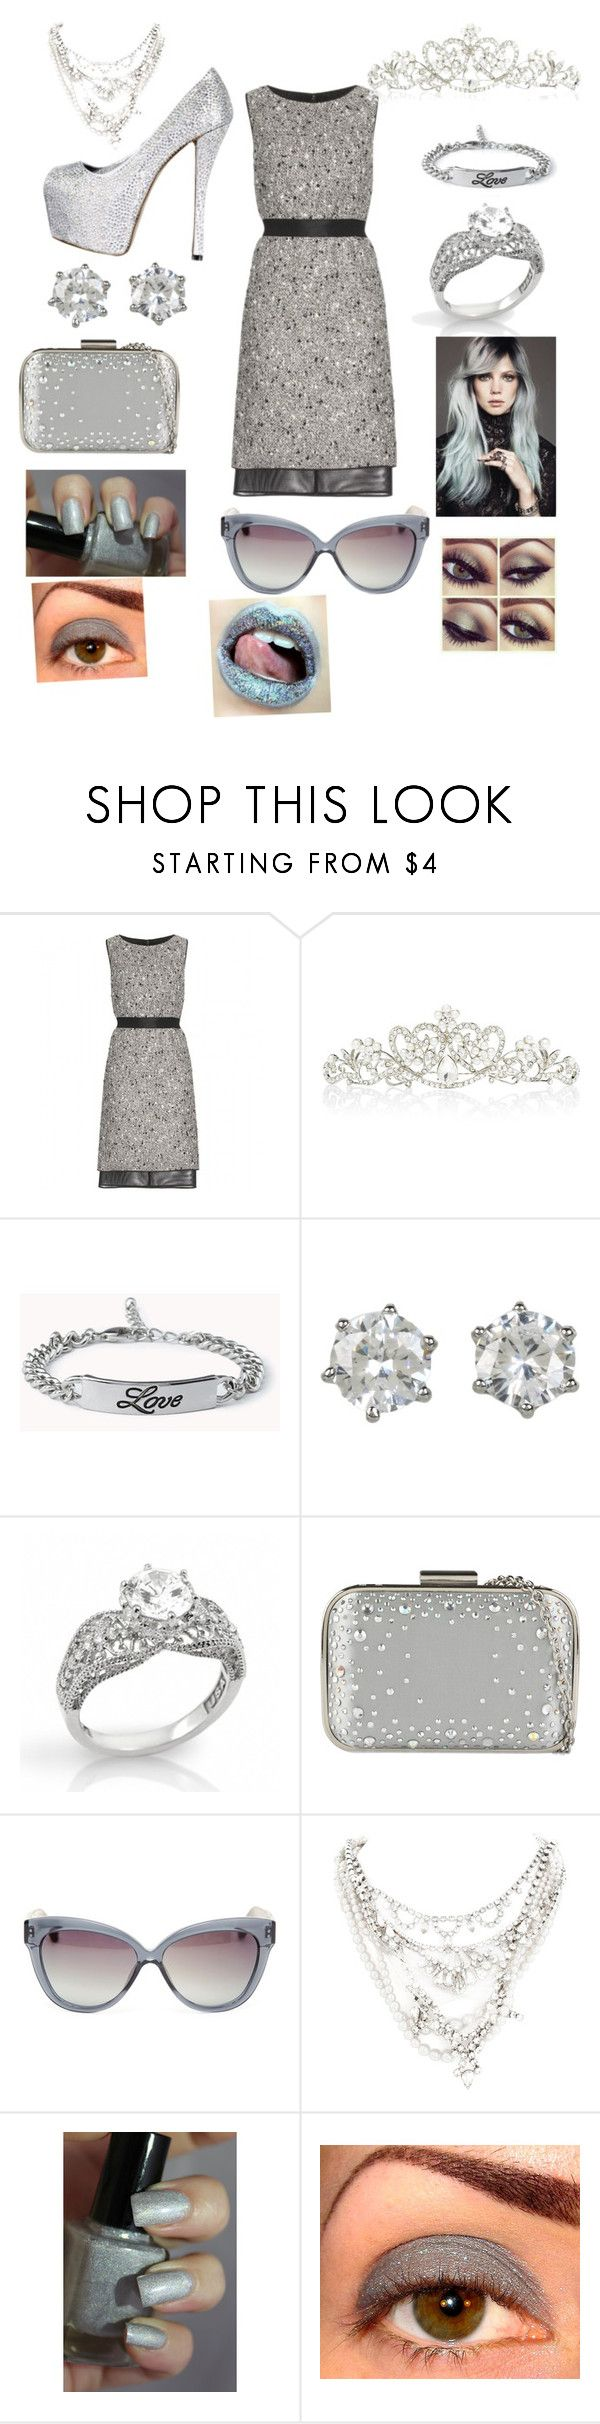 """Silver!"" by harlowe215 ❤ liked on Polyvore featuring Giambattista Valli, Forever New, Forever 21, Juicy Couture, Fantasy Jewelry Box, ALDO, Linda Farrow and Tom Binns"